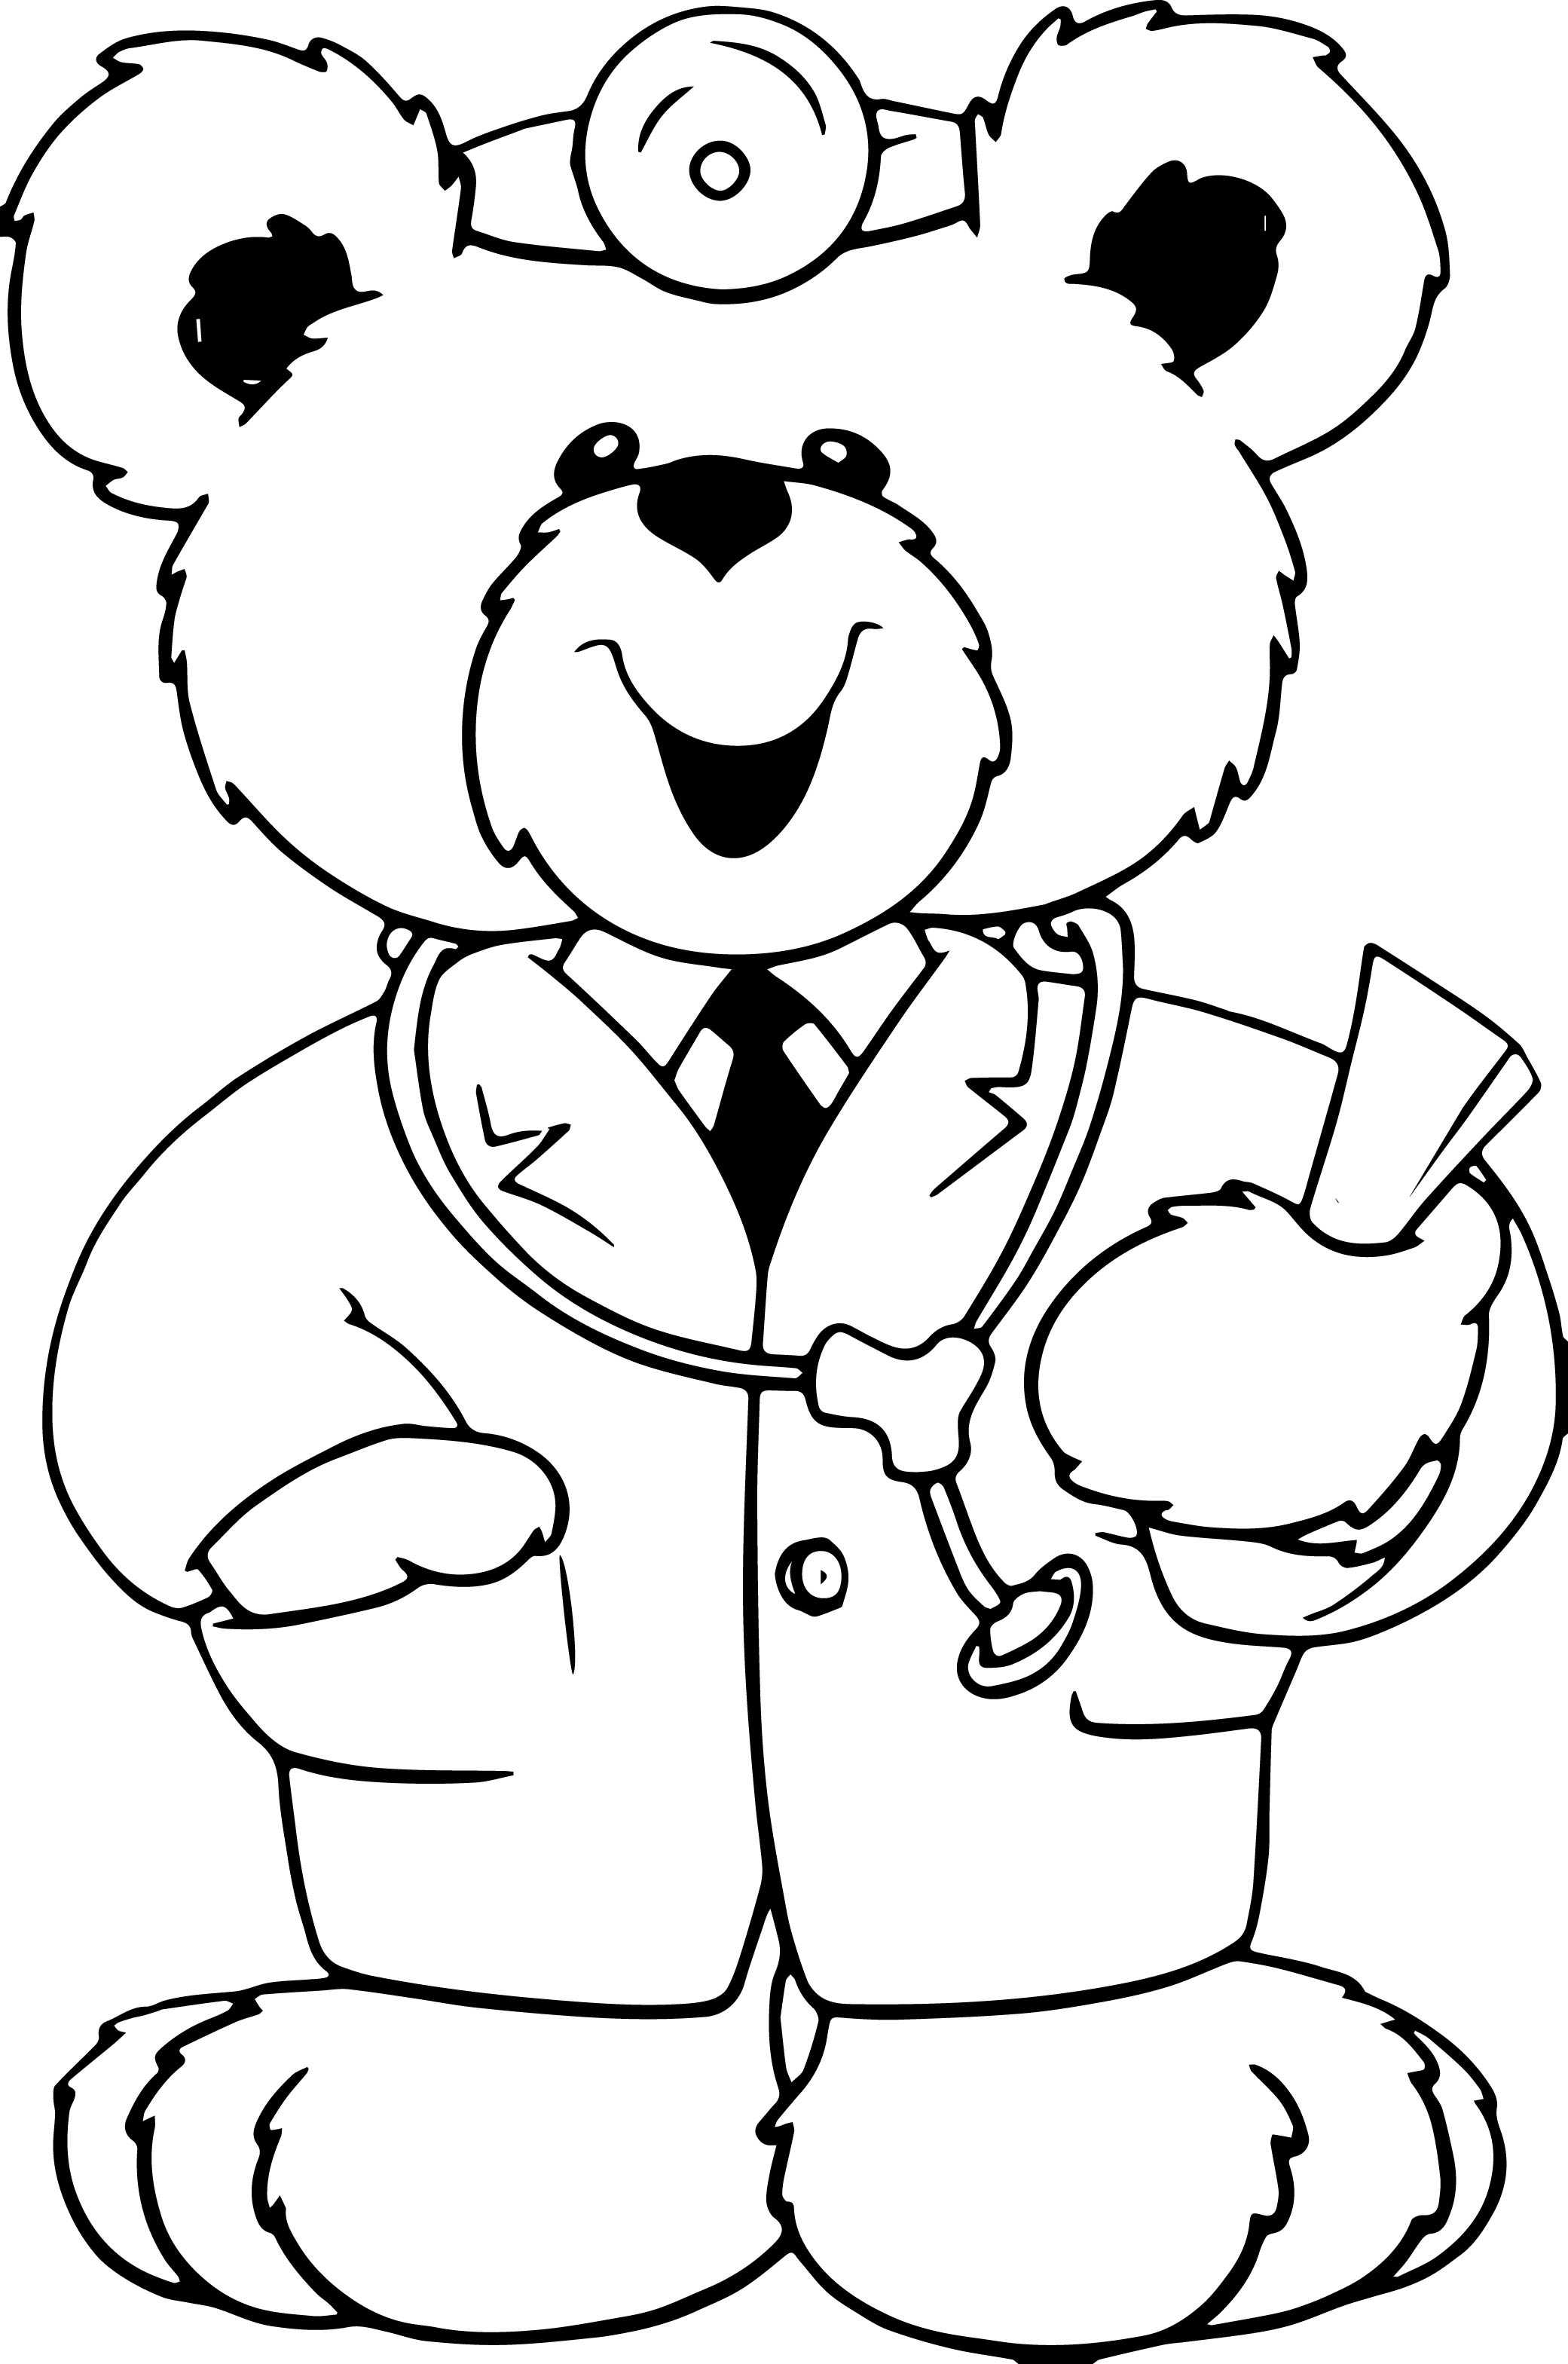 cute doctor bear coloring page wecoloringpage